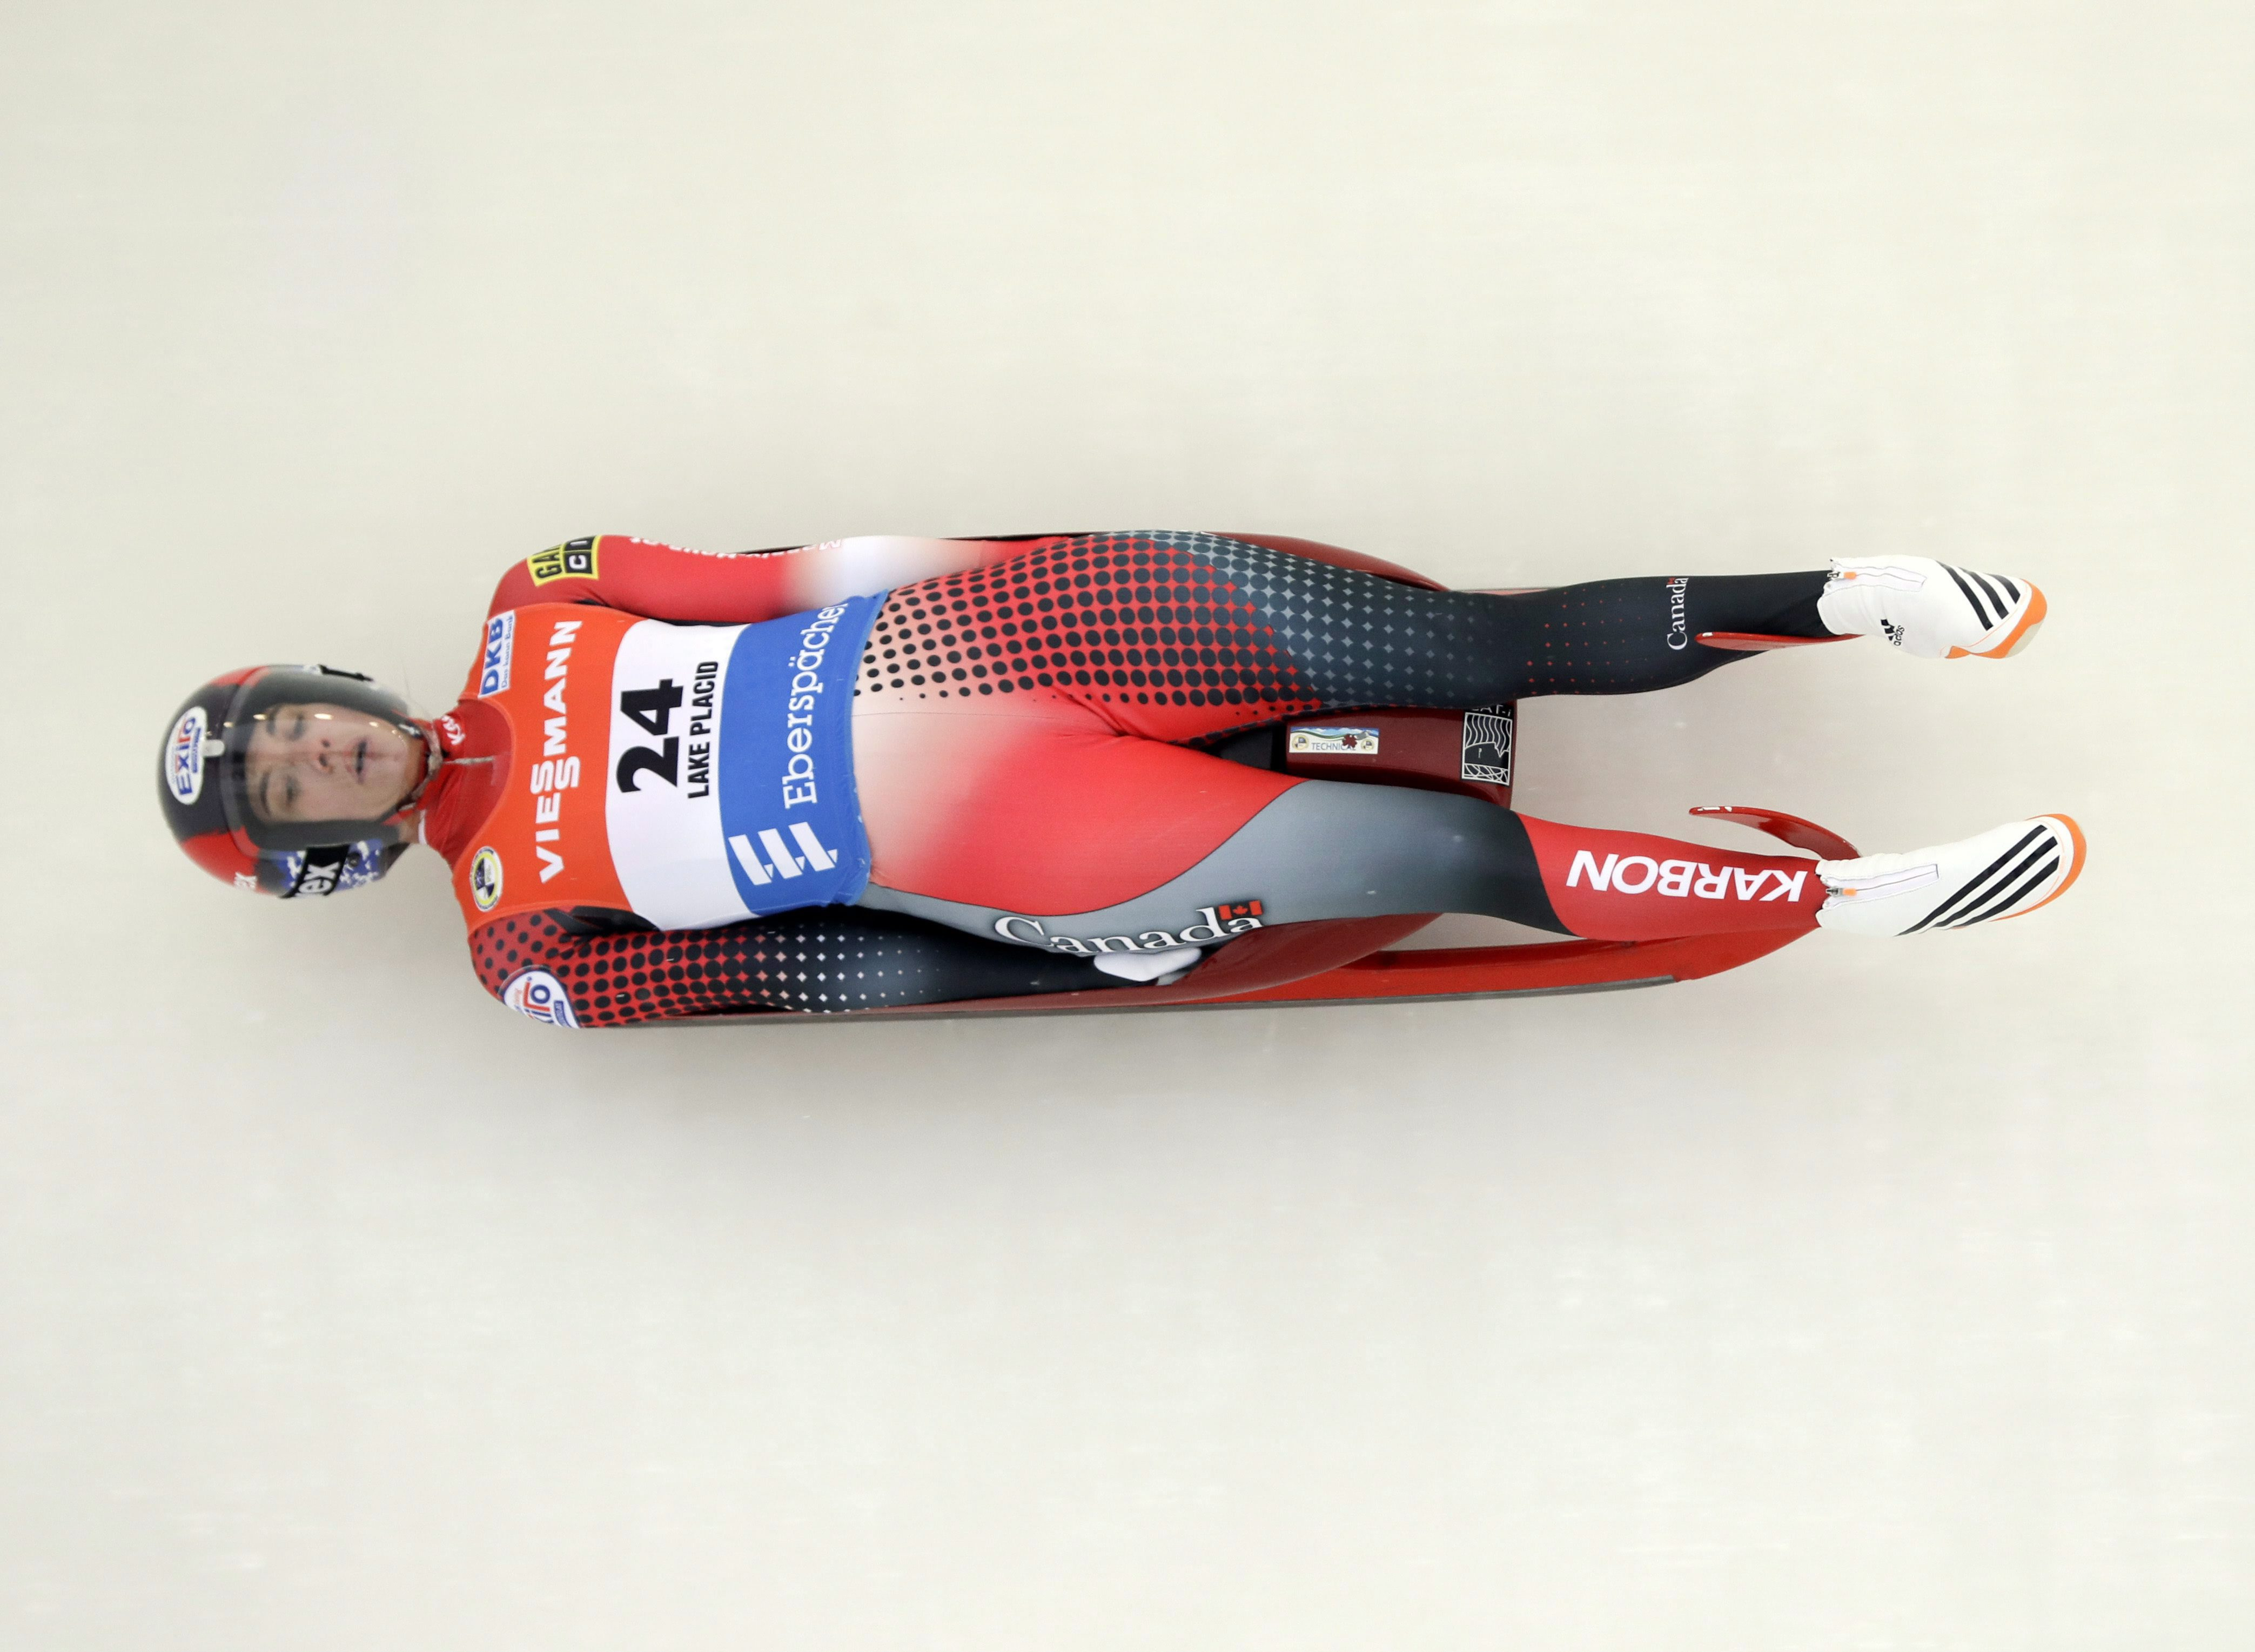 Kimberley McRae, of Canada, competes in the women's luge World Cup race on Saturday, Dec. 3, 2016, in Lake Placid, N.Y. (AP Photo/Mike Groll)